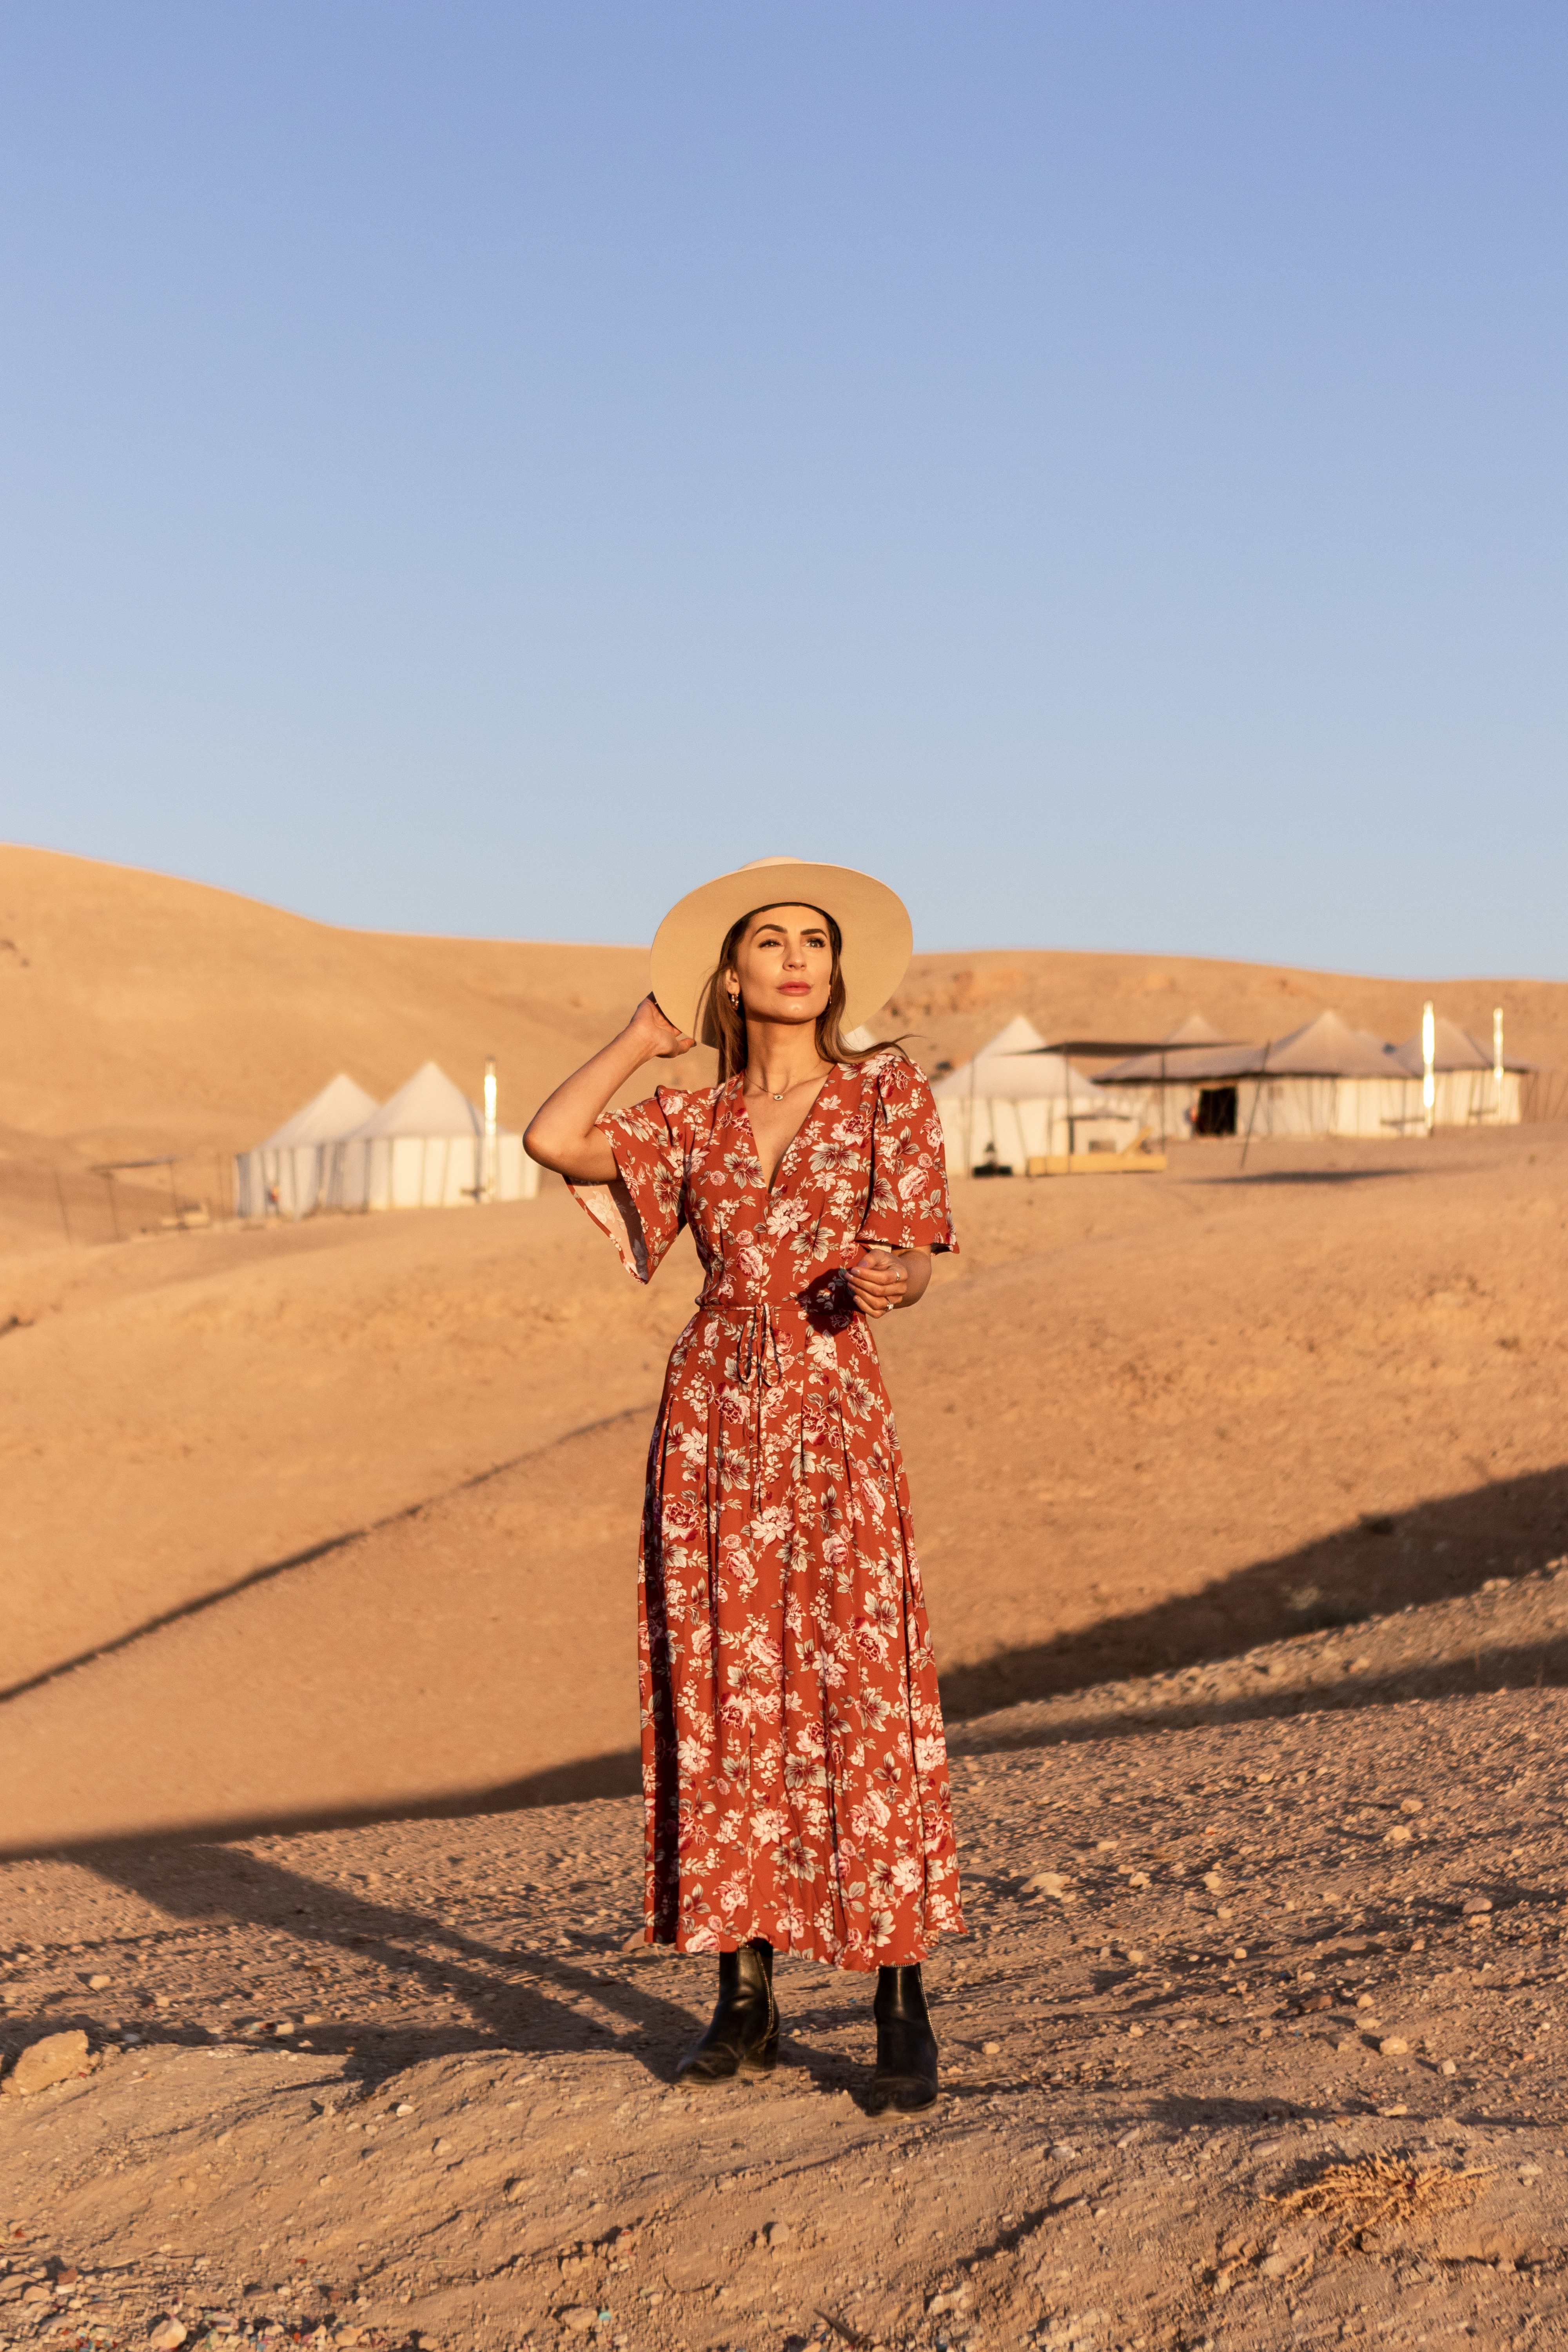 desert, agafay desert, morocco, marrakech, fashion, french connection, maxi dress outfit, lack of color, travel to morocco, travel to marrakech, scarabeo camp, glamping in morocco, glamping in the sahara, desert luxury camp, moroccan rug, moroccan devor,